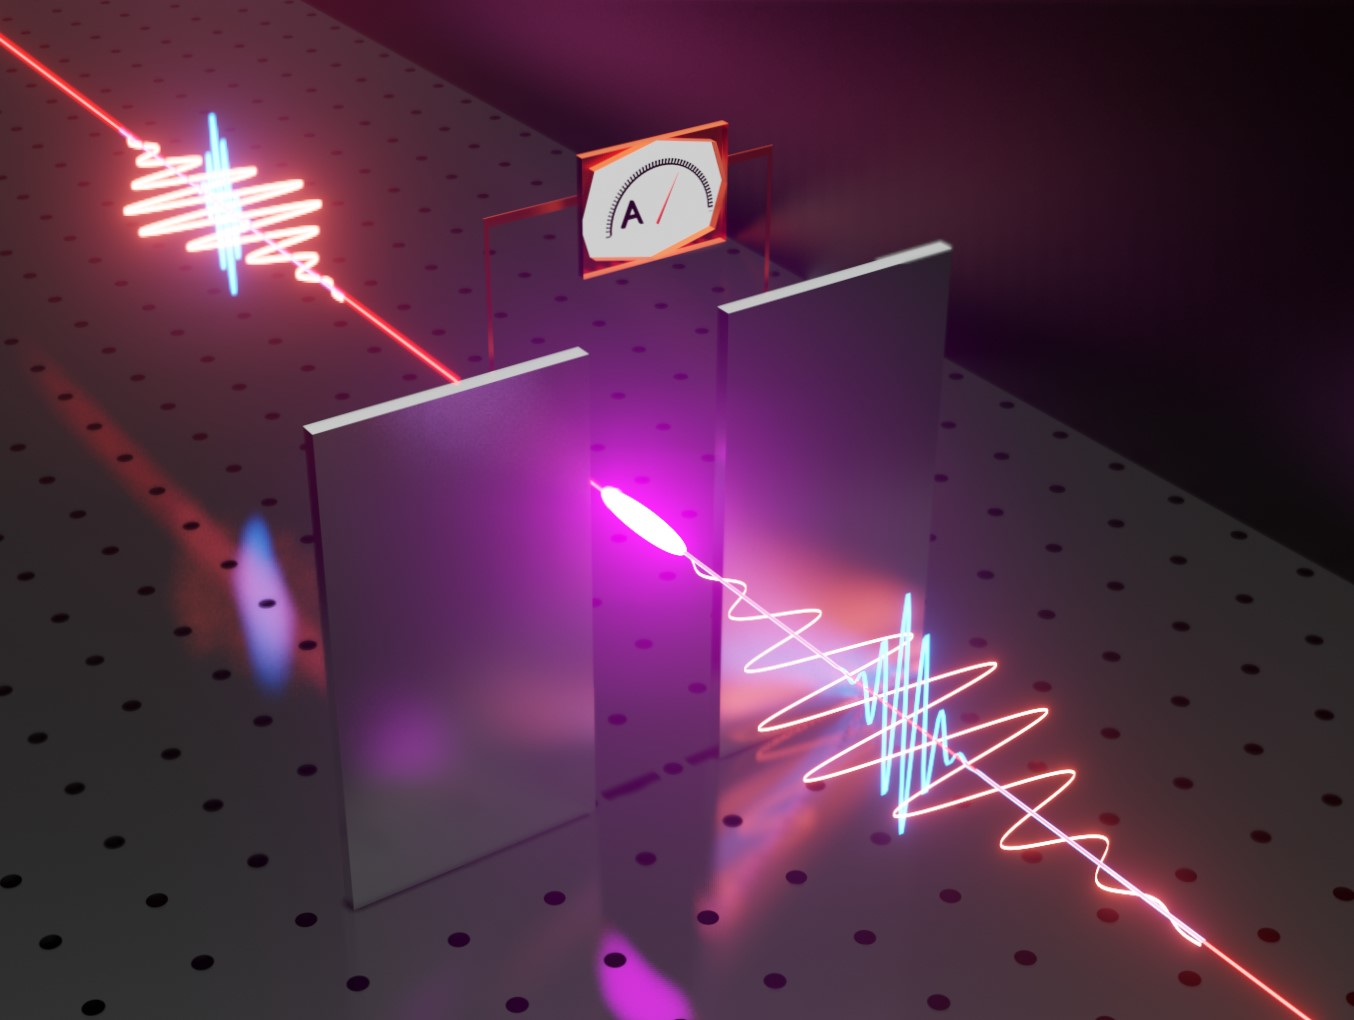 Illustration of the experiment to measure the electromagnetic field of a light wave: the light wave (orange) is overlapped with a gating pulse (blue). Both pulses are focused into the air gap between two metallic electrodes, where they create a plasma spark.